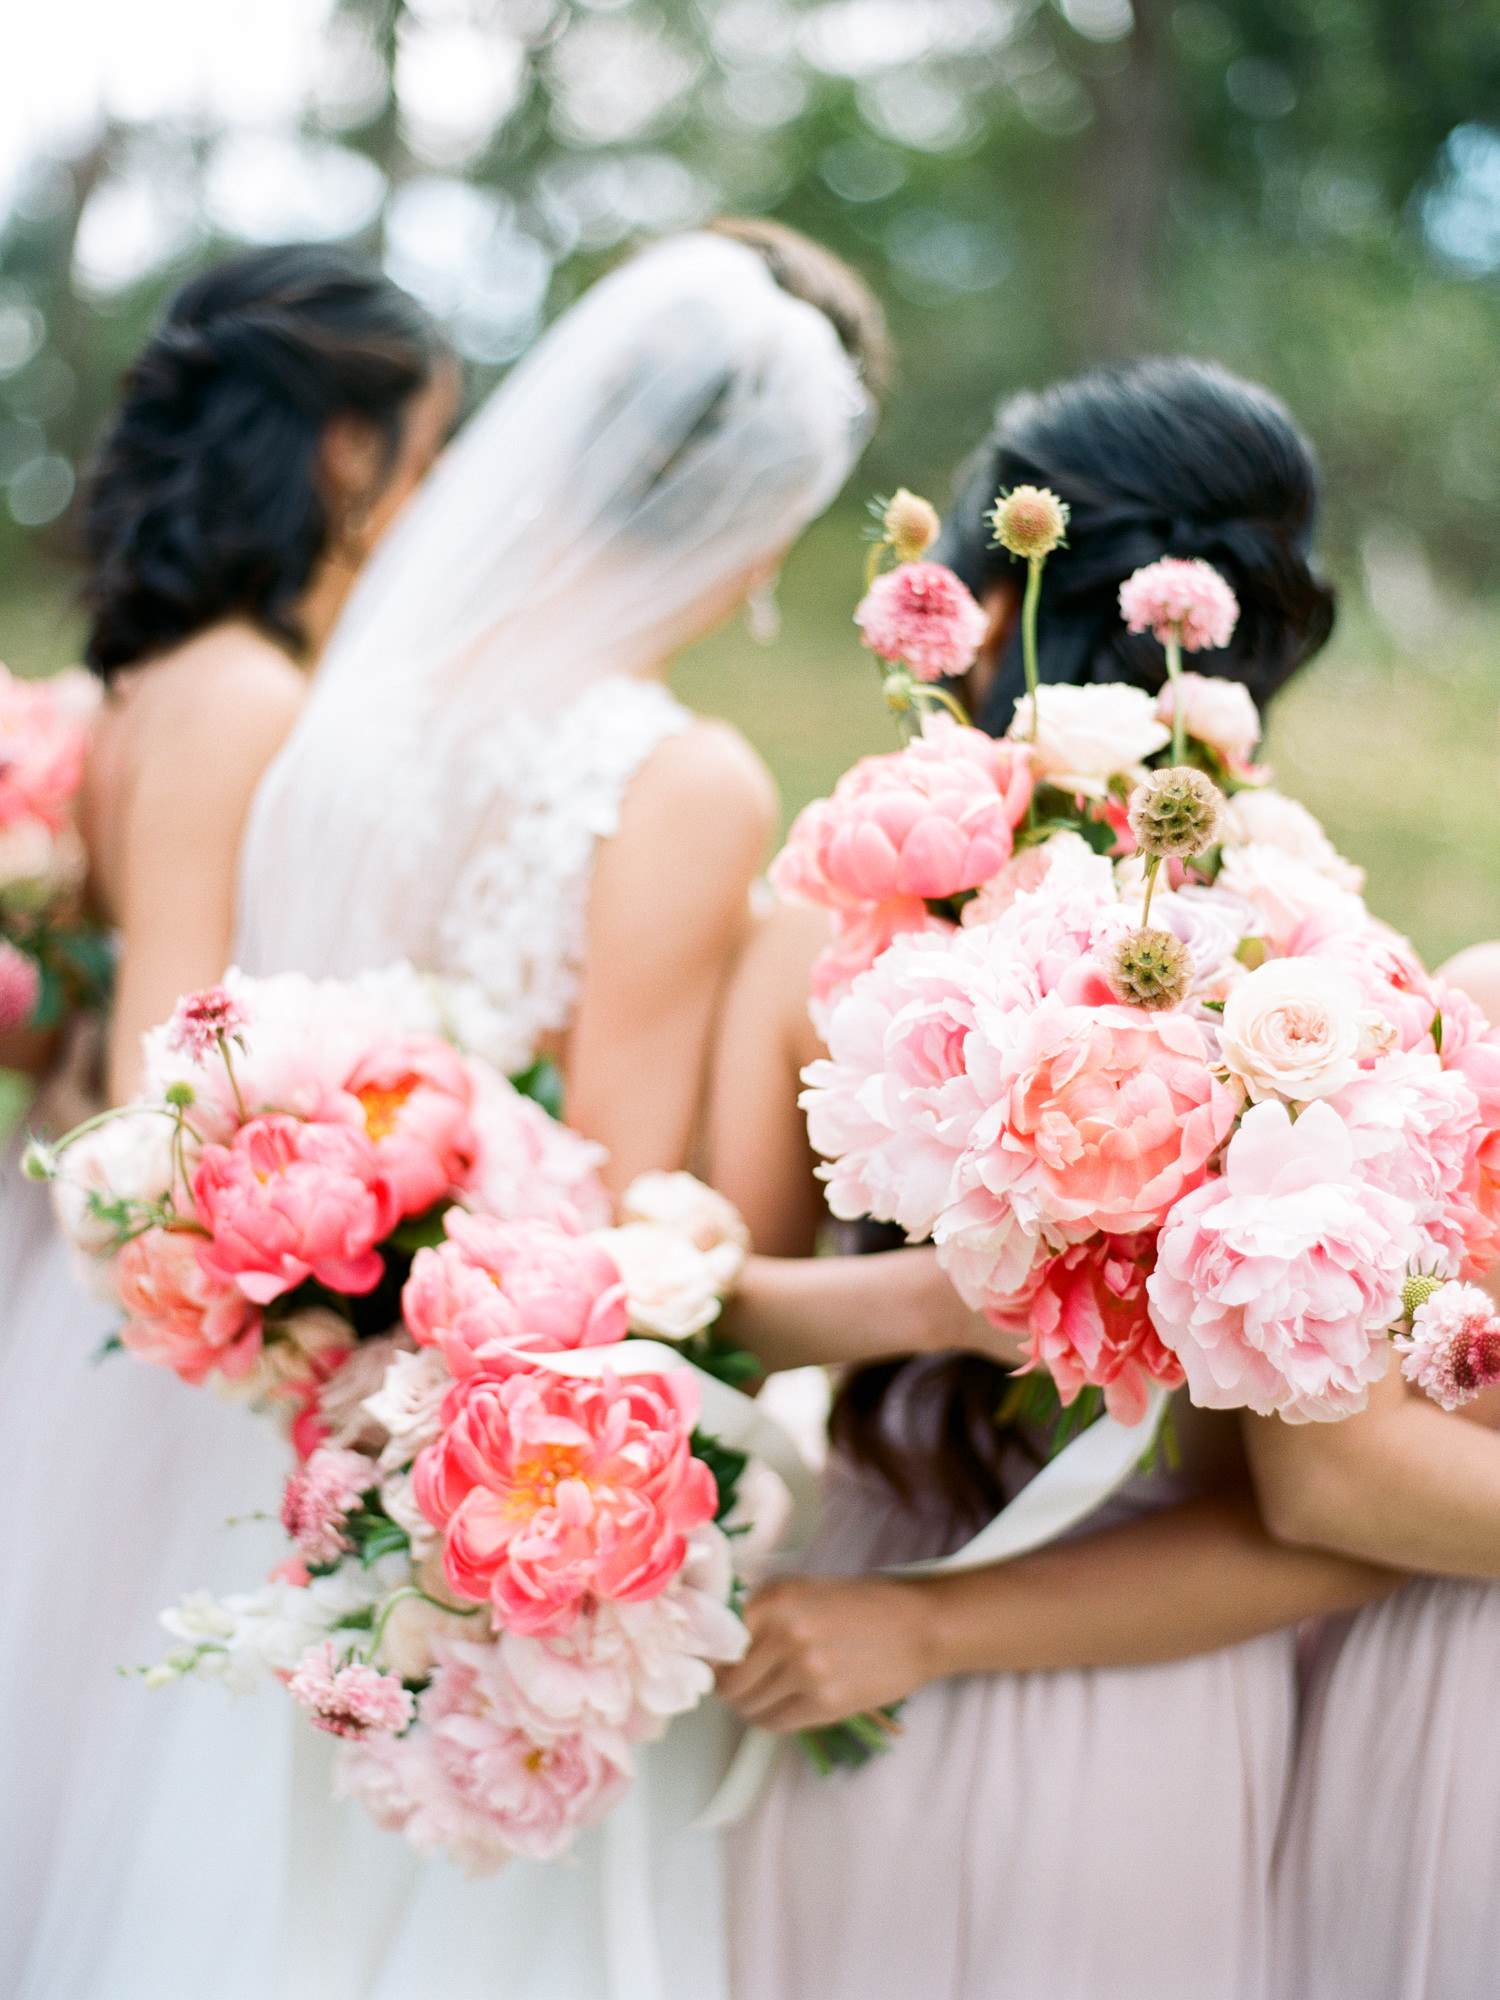 ALWAYS With Love - Chanele Rose Flowers & Styling